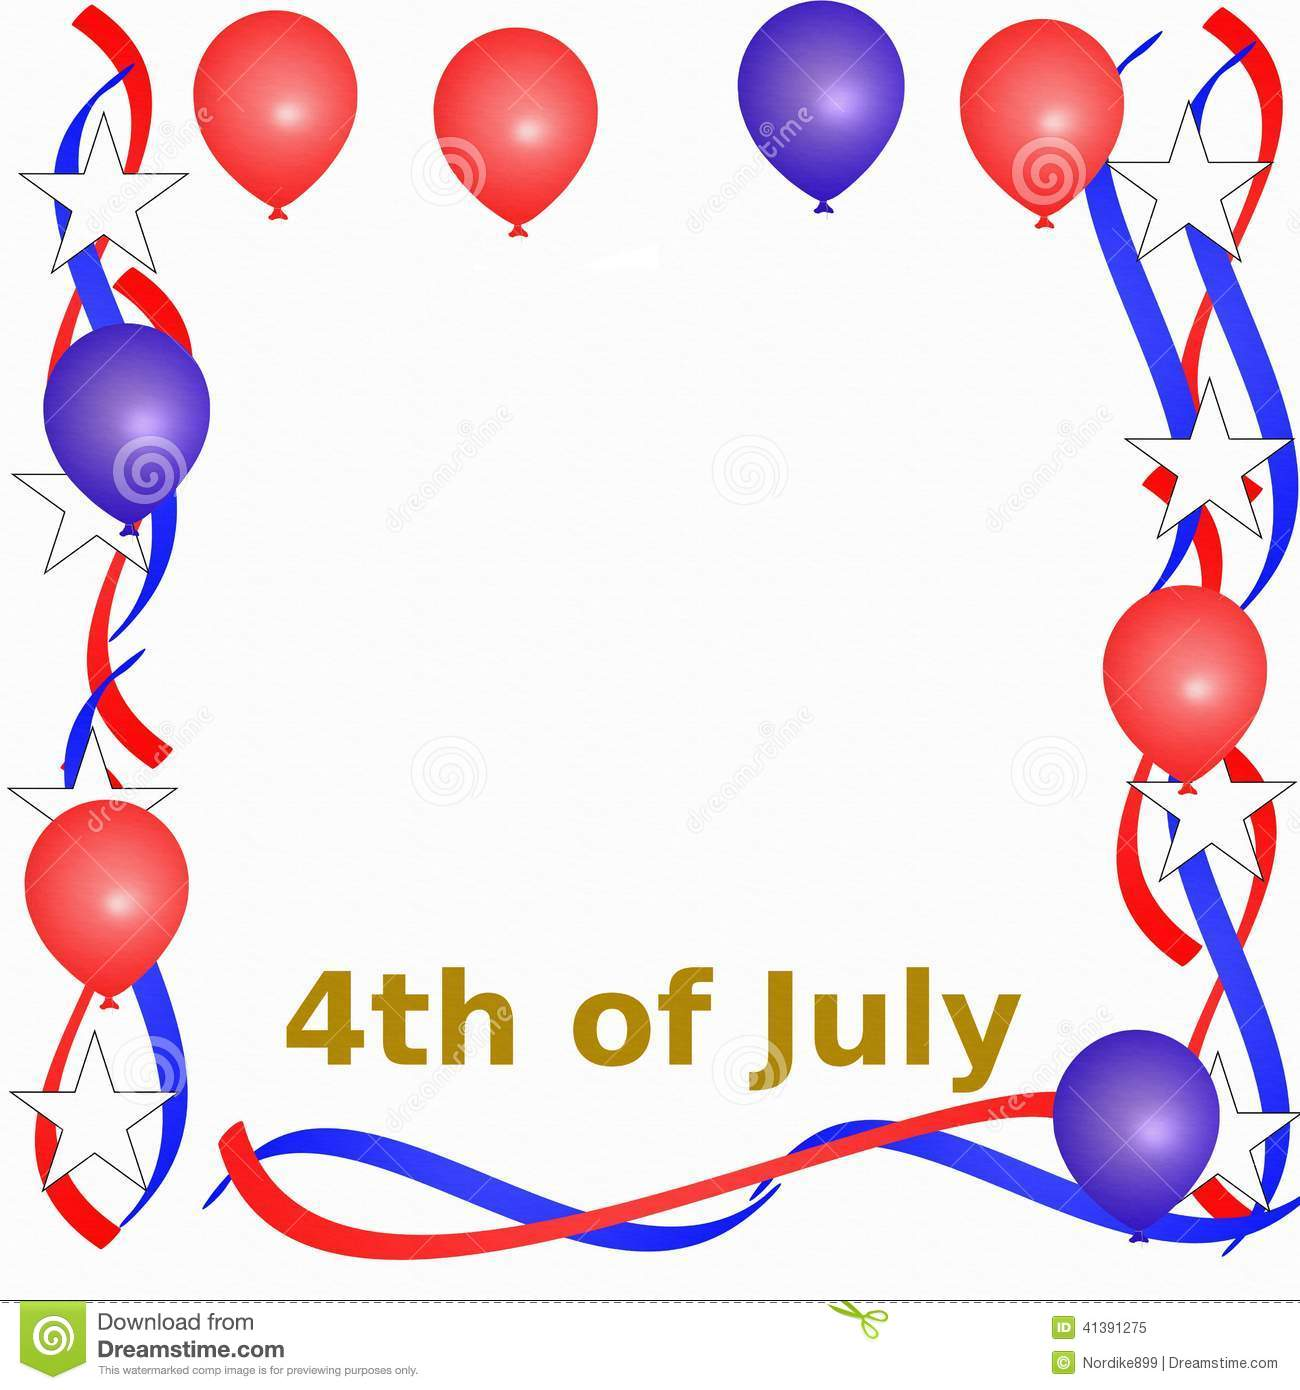 4th of July Frame stock illustration. Illustration of fourth.